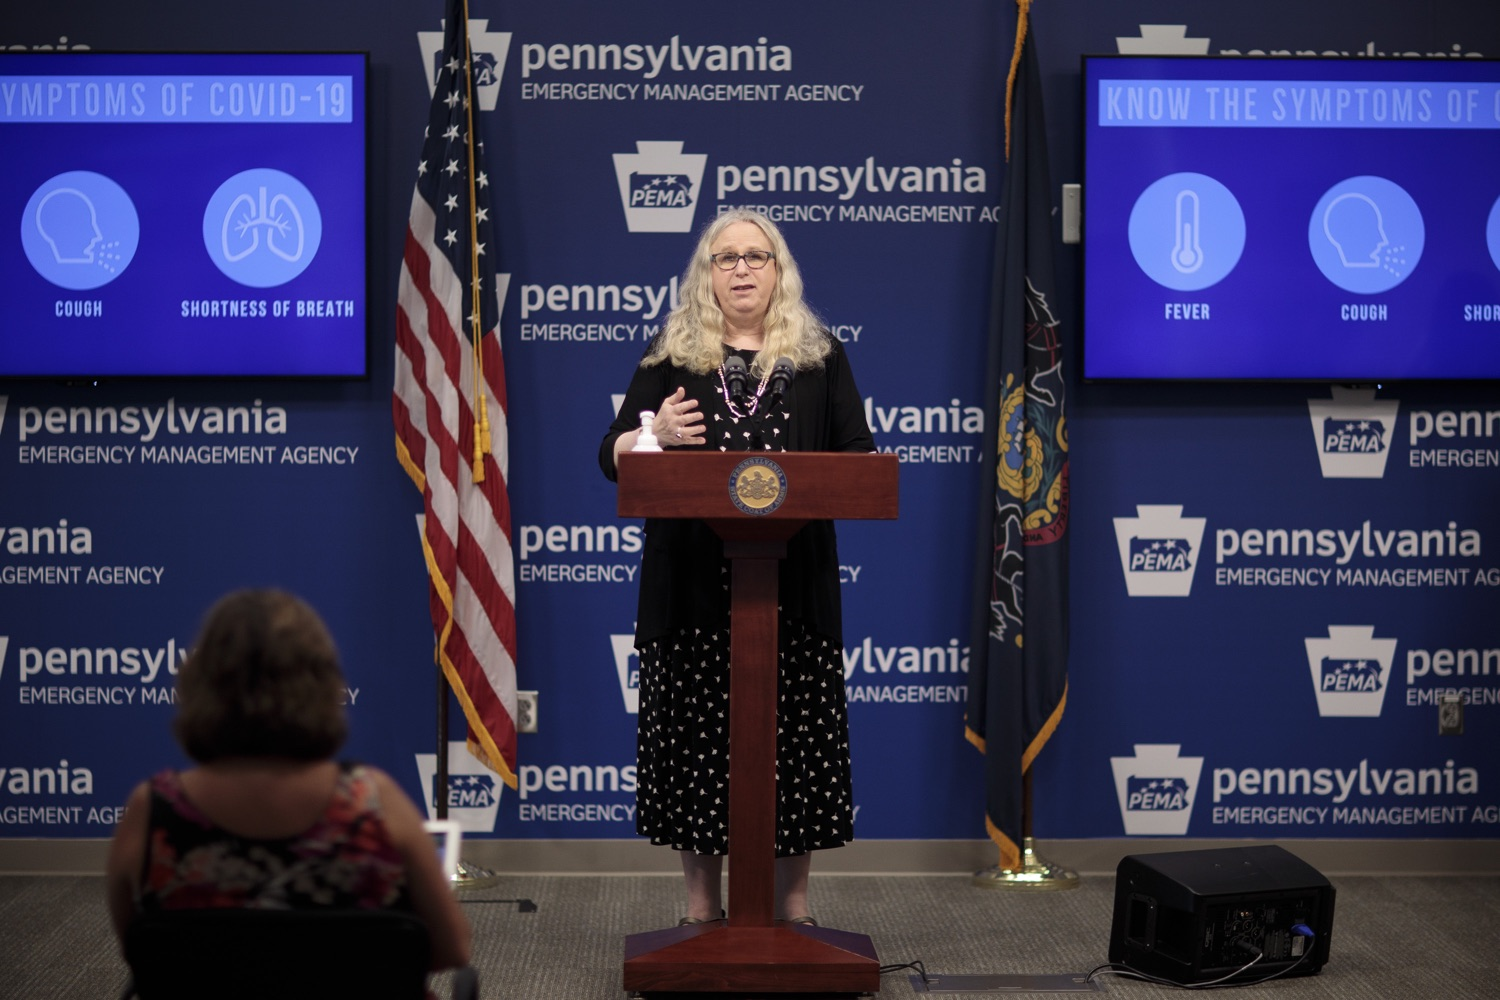 "<a href=""https://filesource.wostreaming.net/commonwealthofpa/photo/18258_doh_covidUpdate_dz_014.jpg"" target=""_blank"">⇣ Download Photo<br></a>Pennsylvania Secretary of Health Dr. Rachel Levine speaking to the press.  The Pennsylvania Department of Health today confirmed as of 12:00 a.m., September 14, that there were 638 additional positive cases of COVID-19 on September 13 and 620 additional positive cases of COVID-19 on September 14, bringing the statewide total to 145,063. All 67 counties in Pennsylvania have cases of COVID-19.  SEPTEMBER 14, 2020 - HARRISBURG, PA"